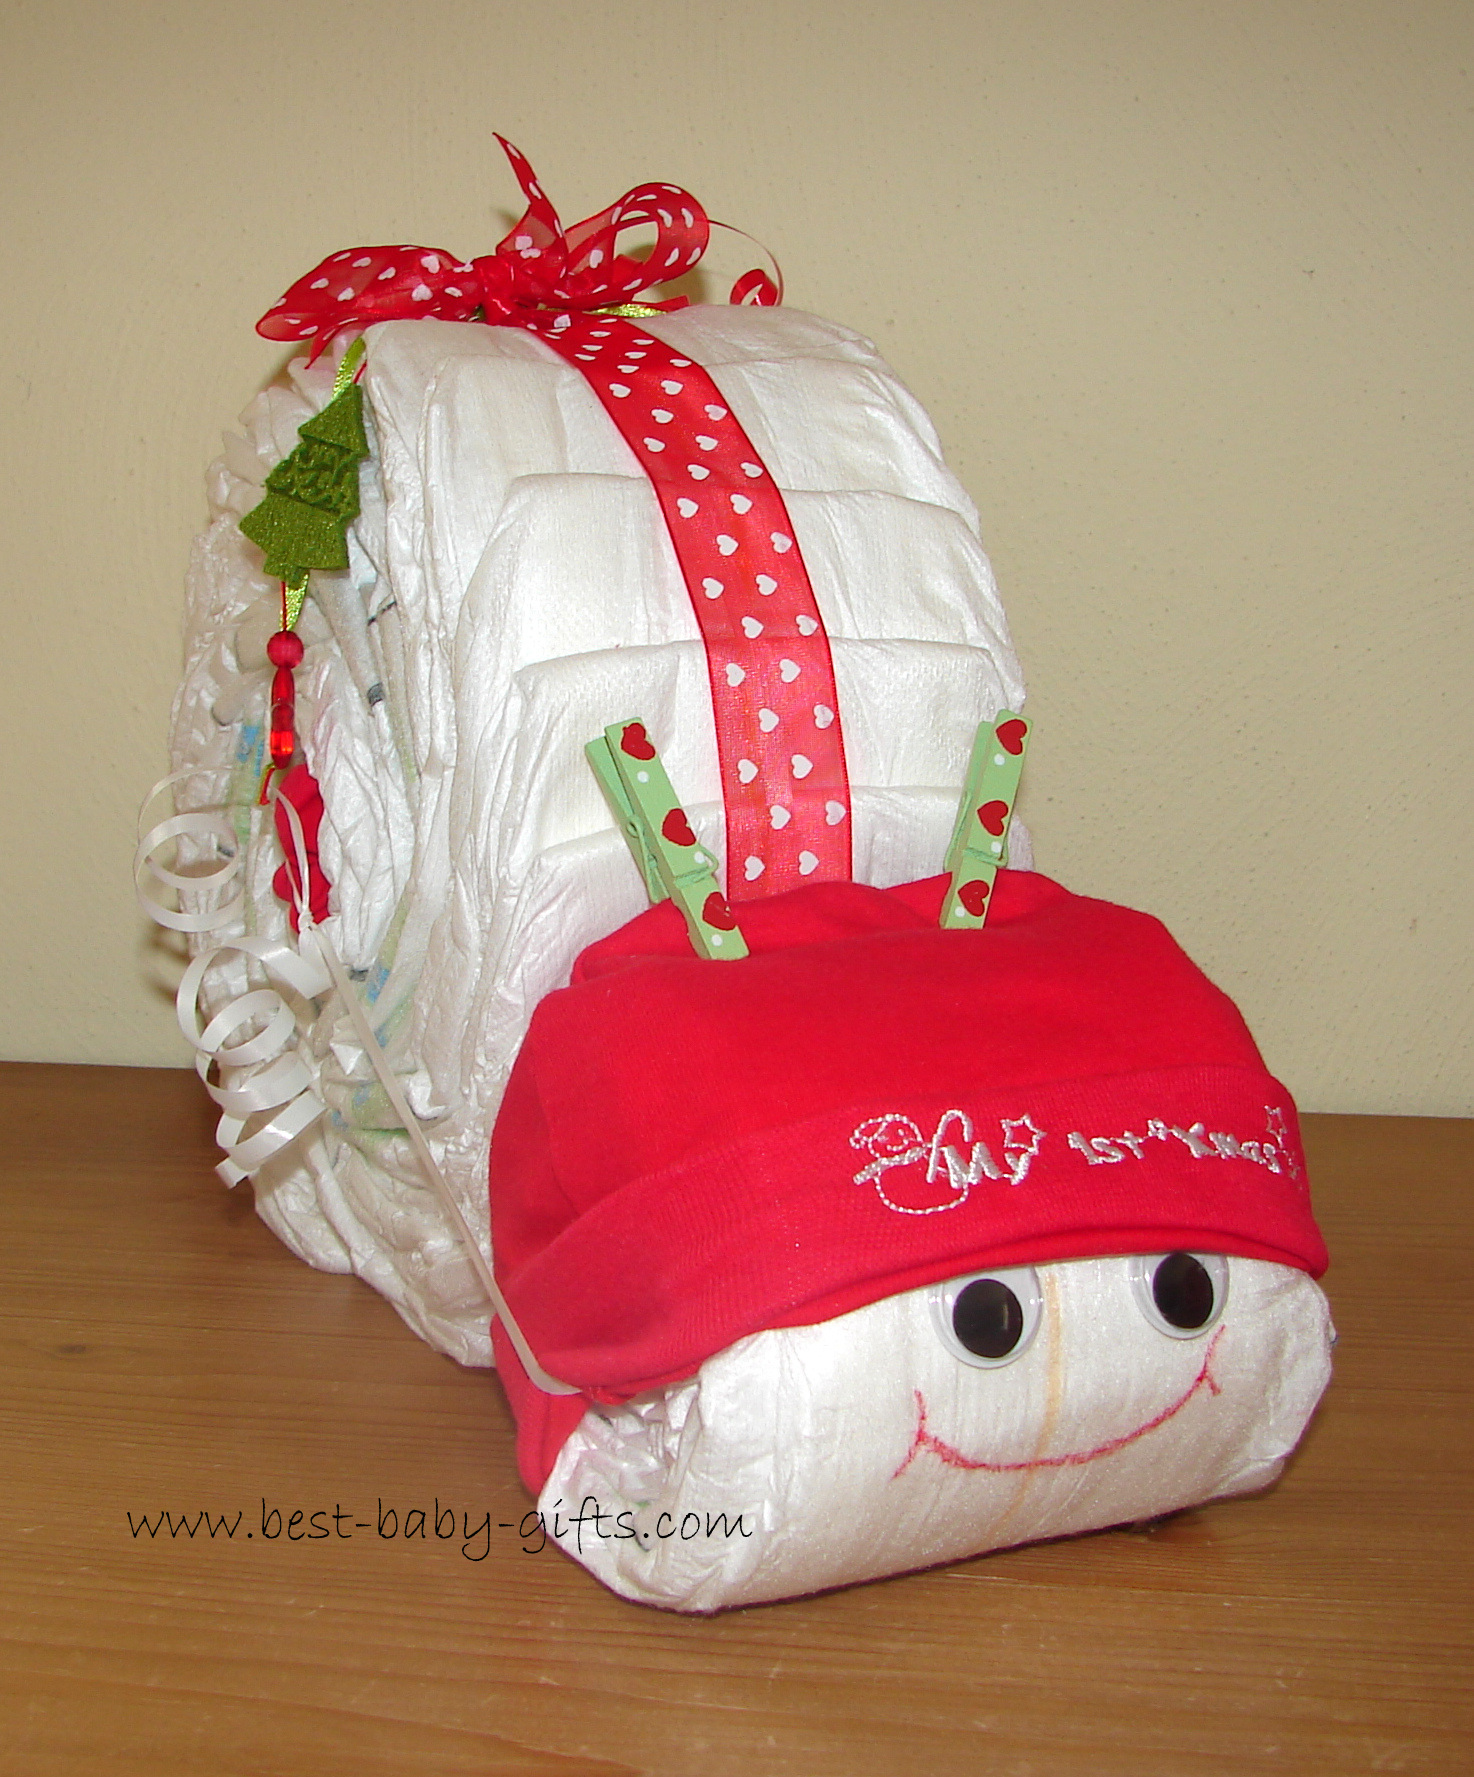 Good Baby Christmas Gifts: Christmas Gifts For Baby ... Cute Gift Ideas For Baby's